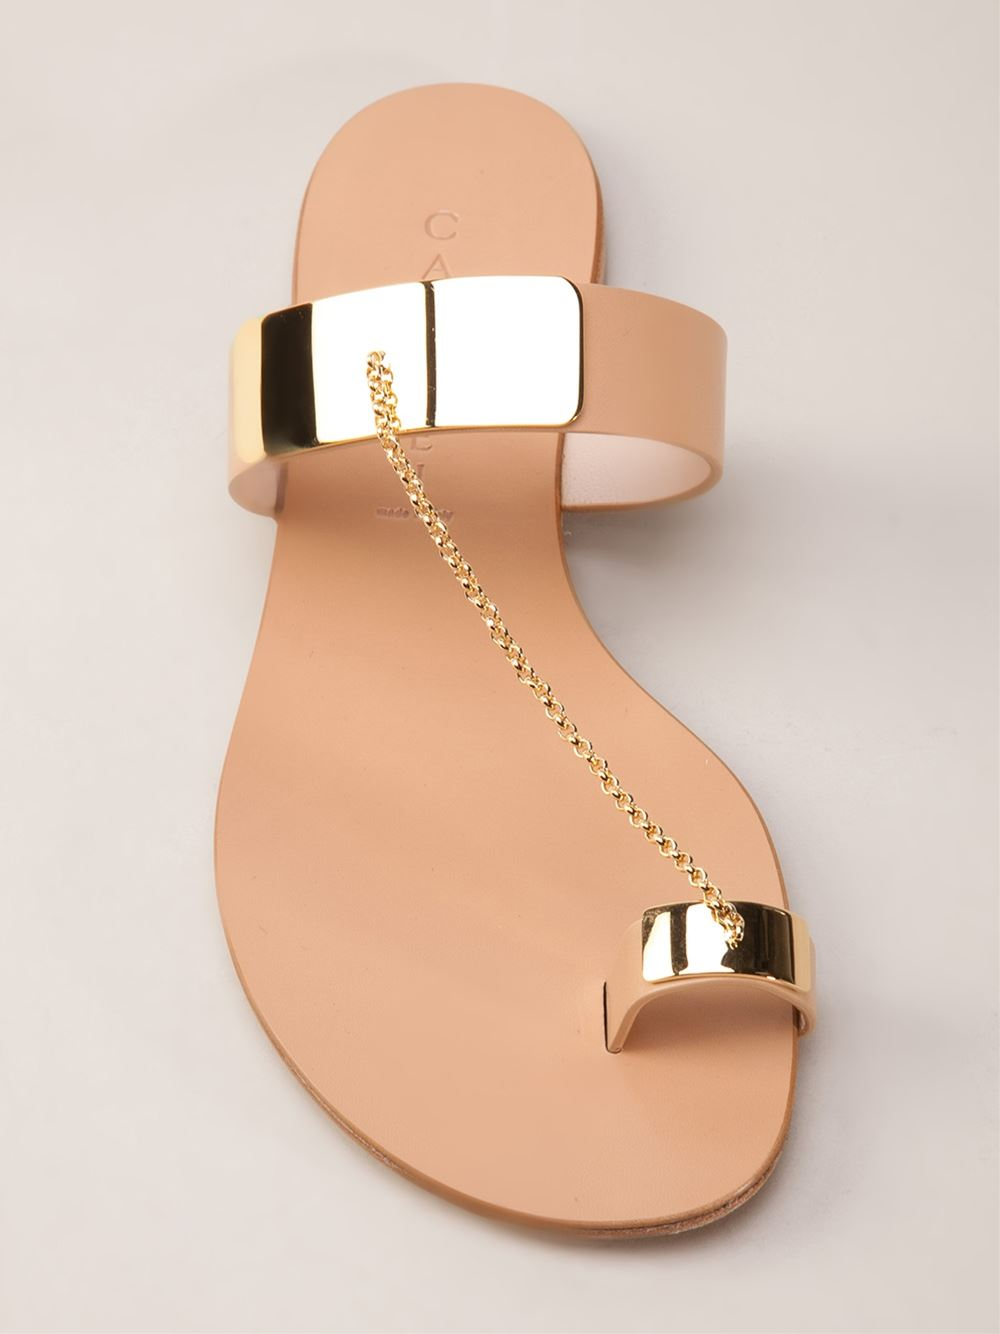 Casadei Gold Plated Sandal - Chuckies New York - Farfetch.com